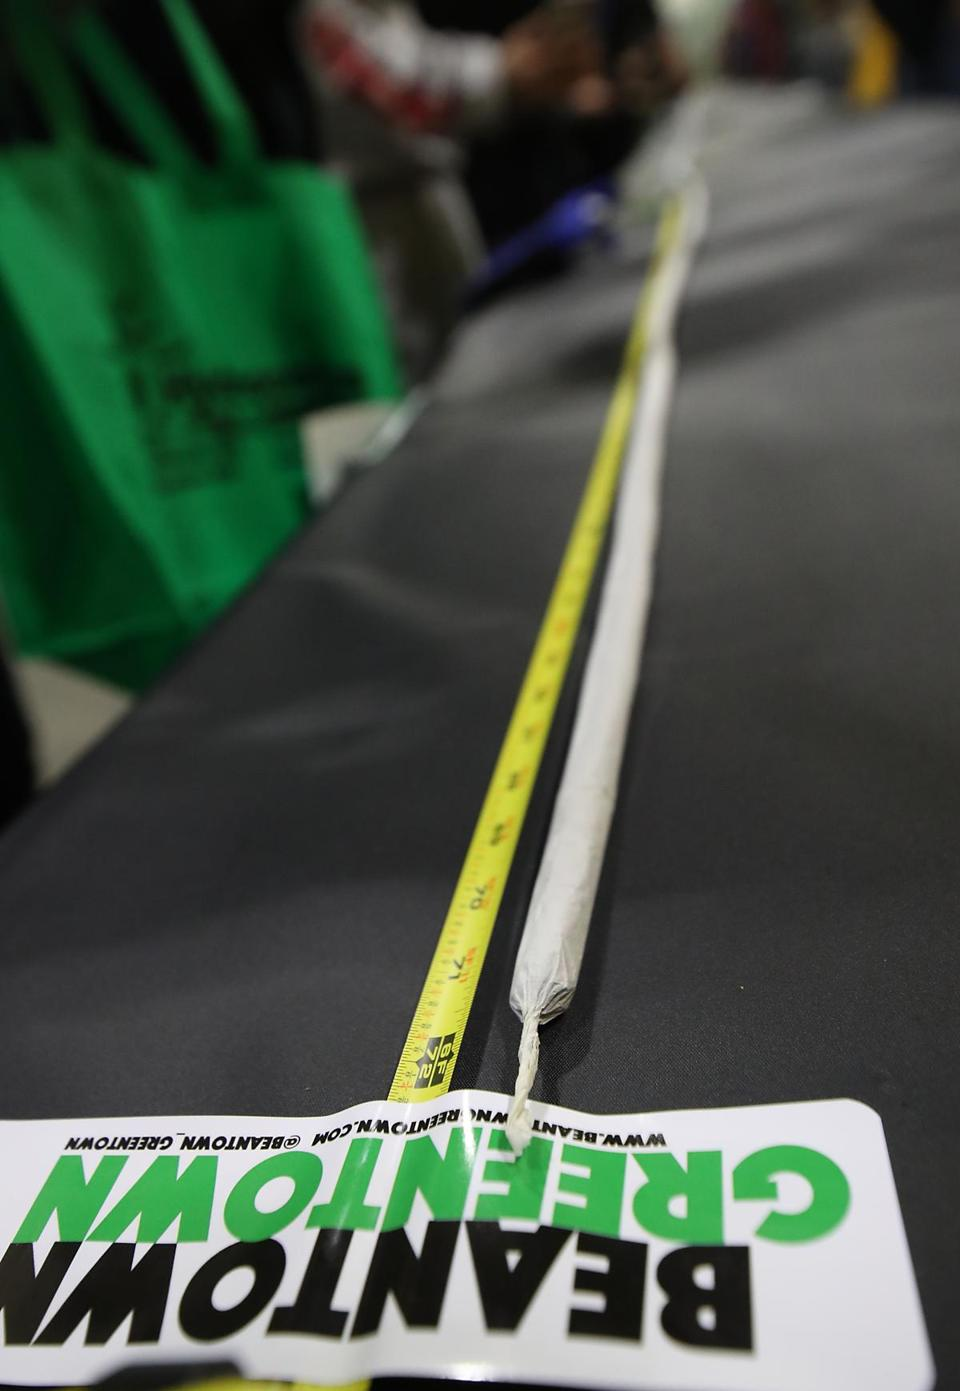 Worcester MA 12/16/17 Its 4:20pm, and the organizers rolled a 100-foot-long joint during the Harvest Cup a marijuana expo and contest to see who can grow the best pot at the DCU Center. The 106 foot joint took 2 pounds of marijuana to construct. It was delivered in 5 foot sections. (Matthew J. Lee/Globe staff) topic reporter: